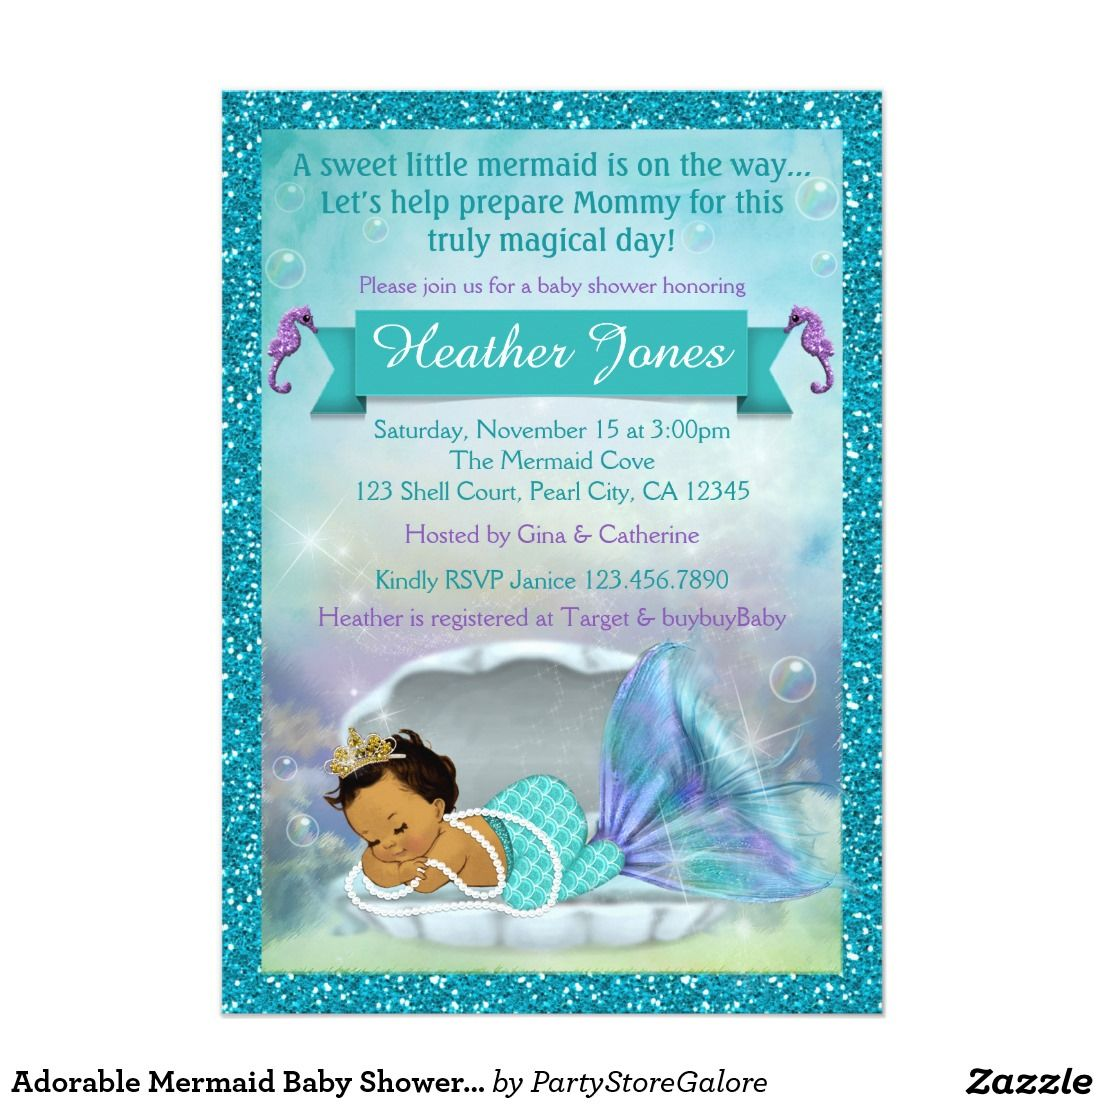 Adorable Mermaid Baby Shower Invitations #136 MED | KENNEDI\'S ...